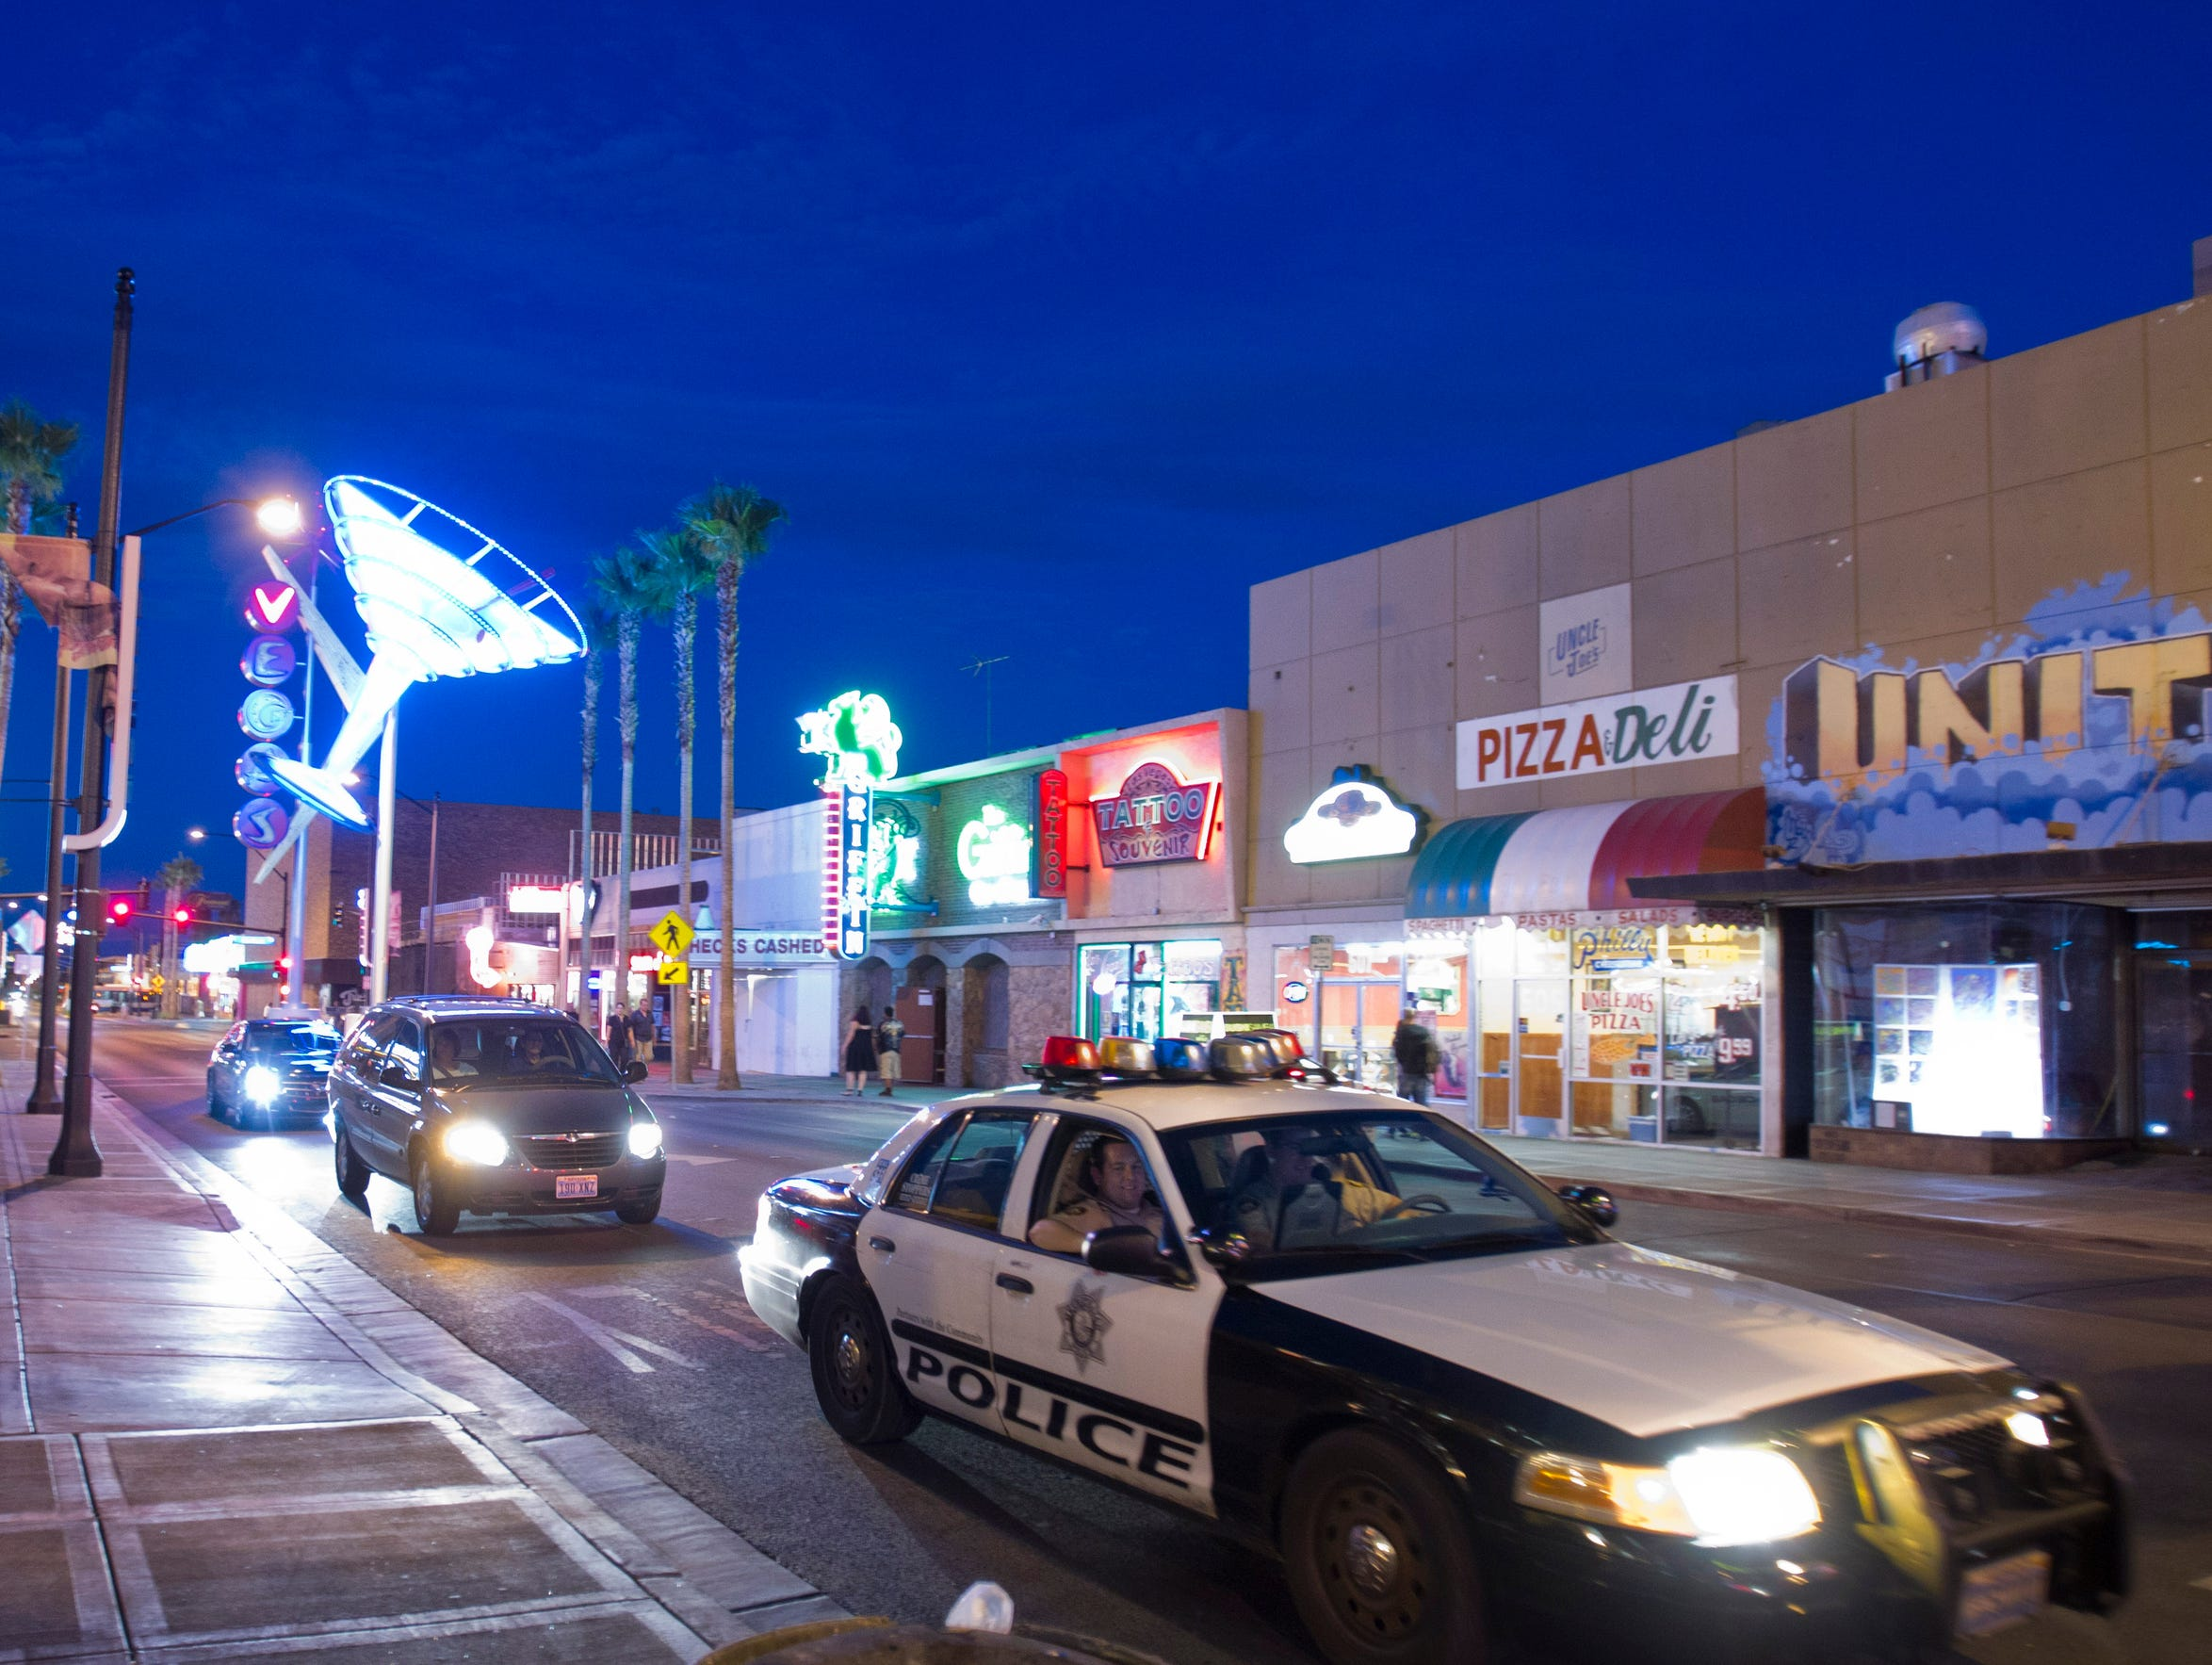 Iw 2014 08 sports wagering guidelines that you cana t afford to overlook - Las Vegas Fugitives Scene